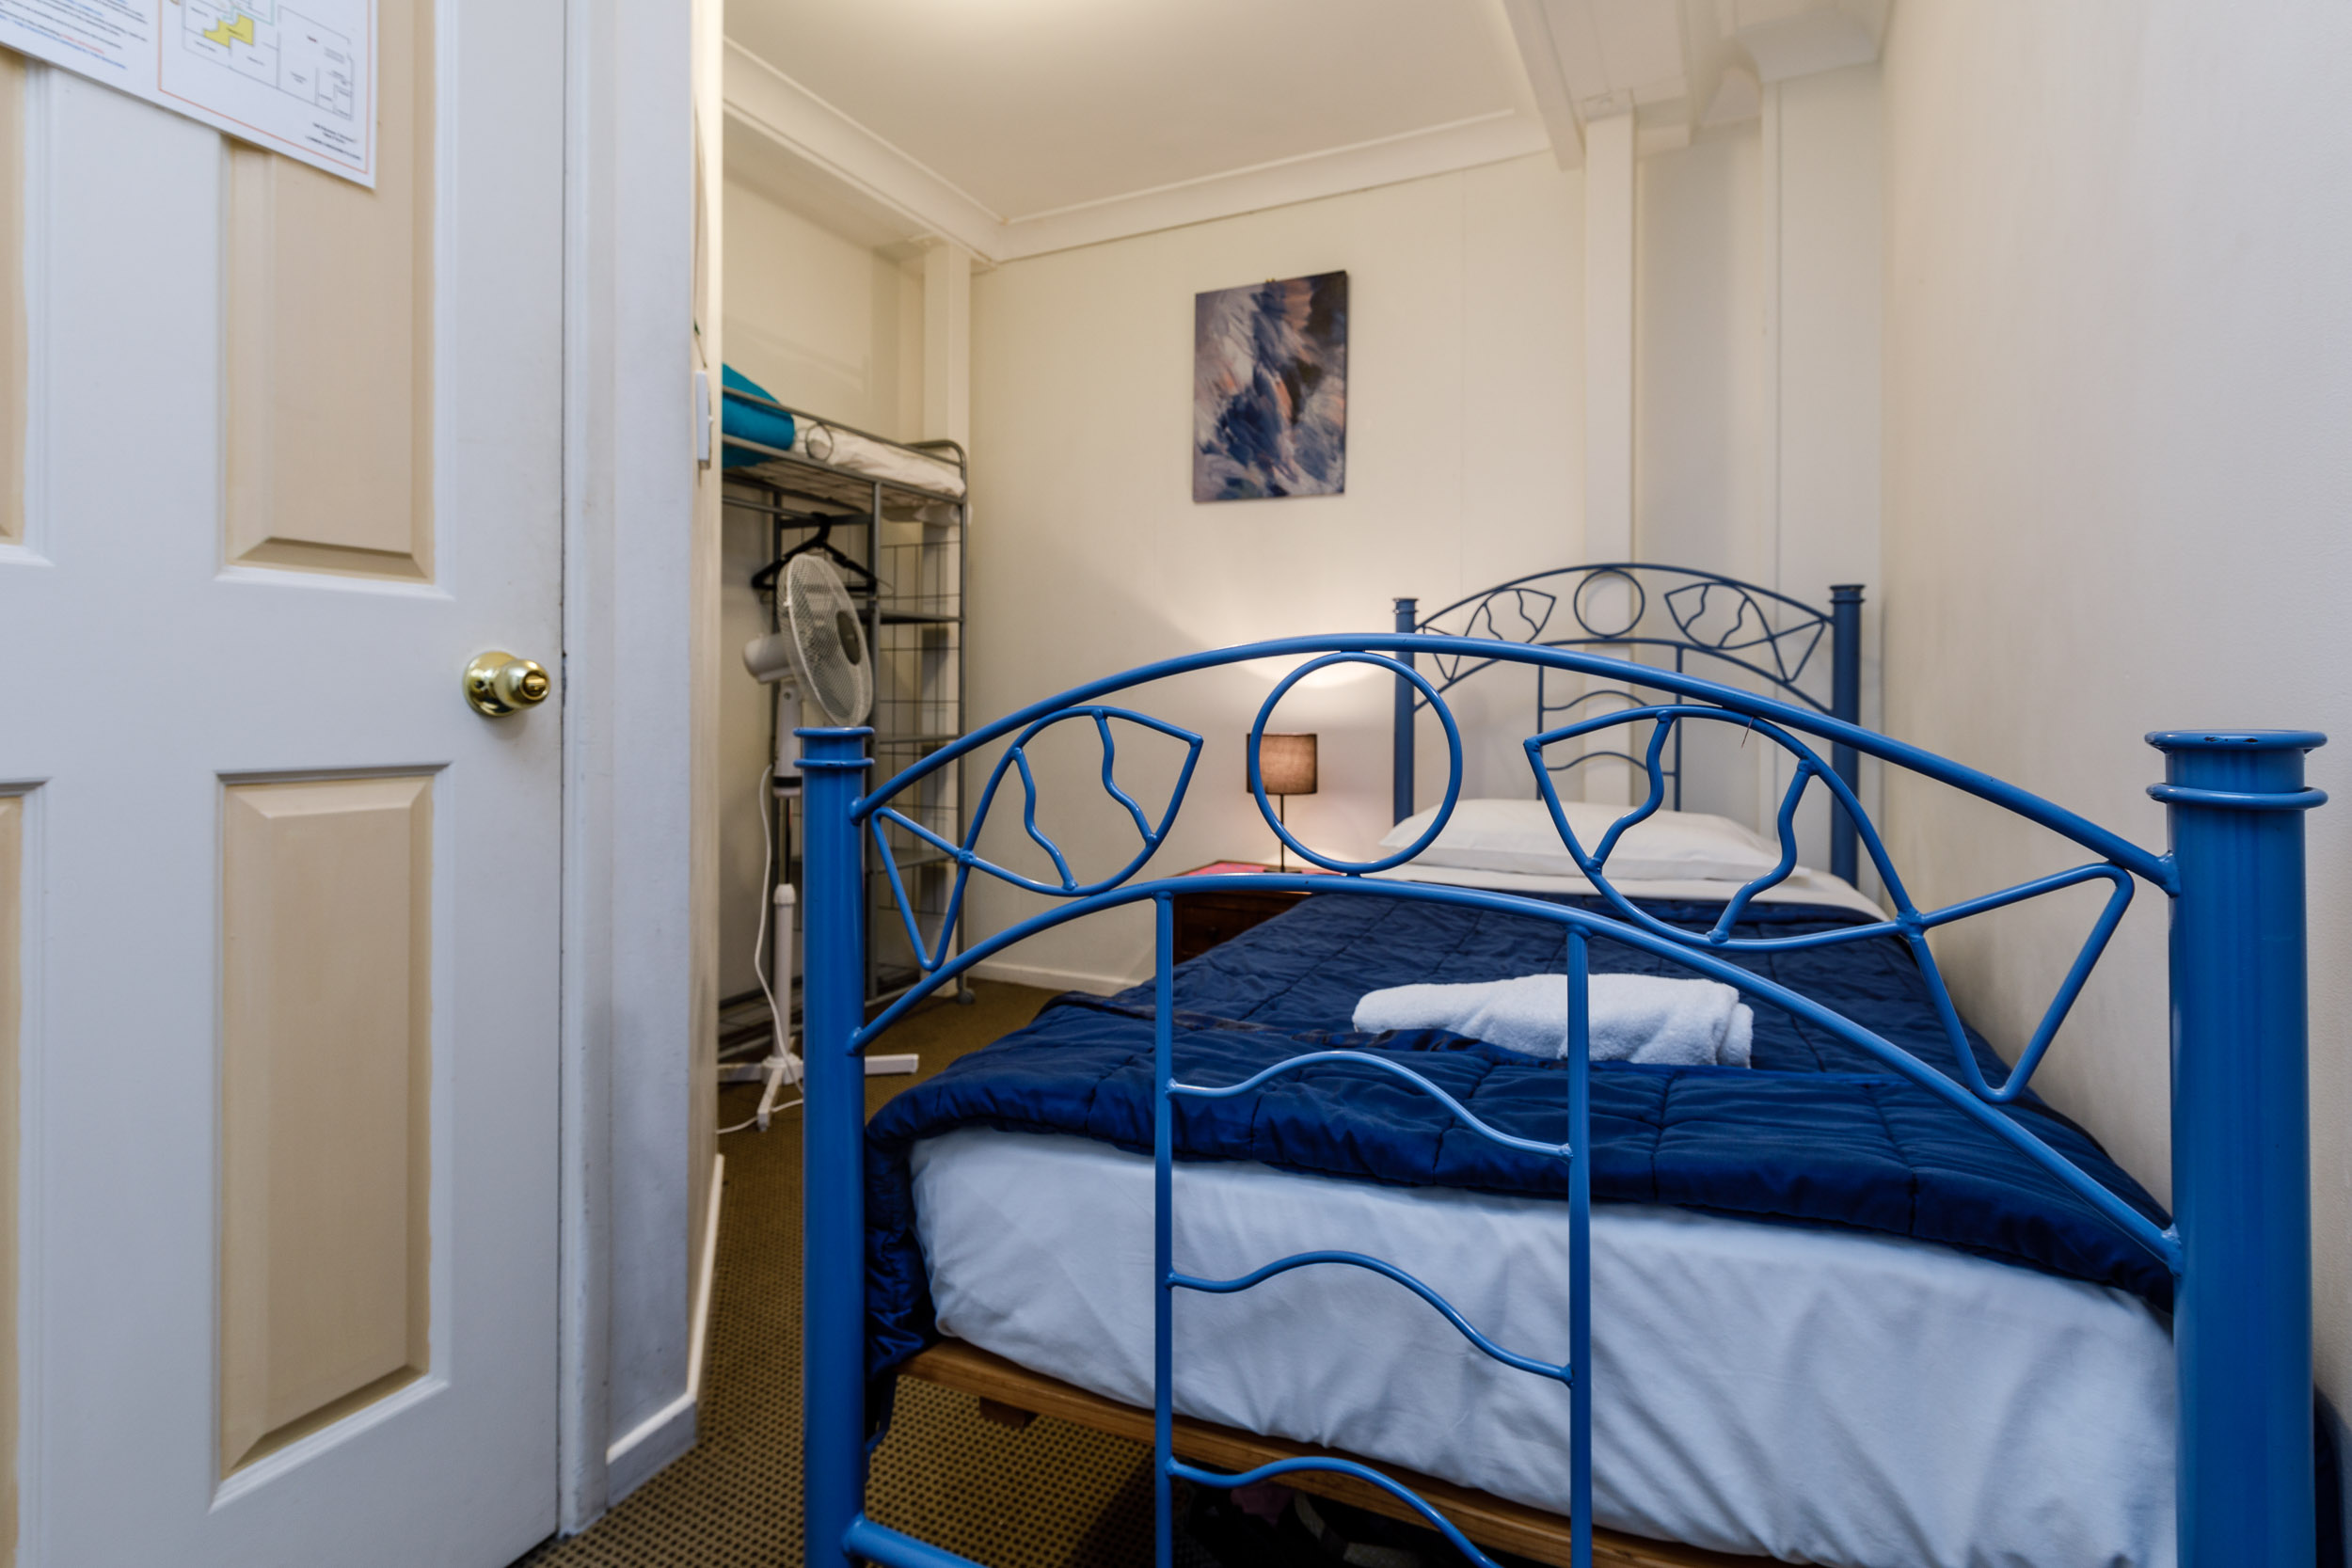 Two Bed Female shared room -